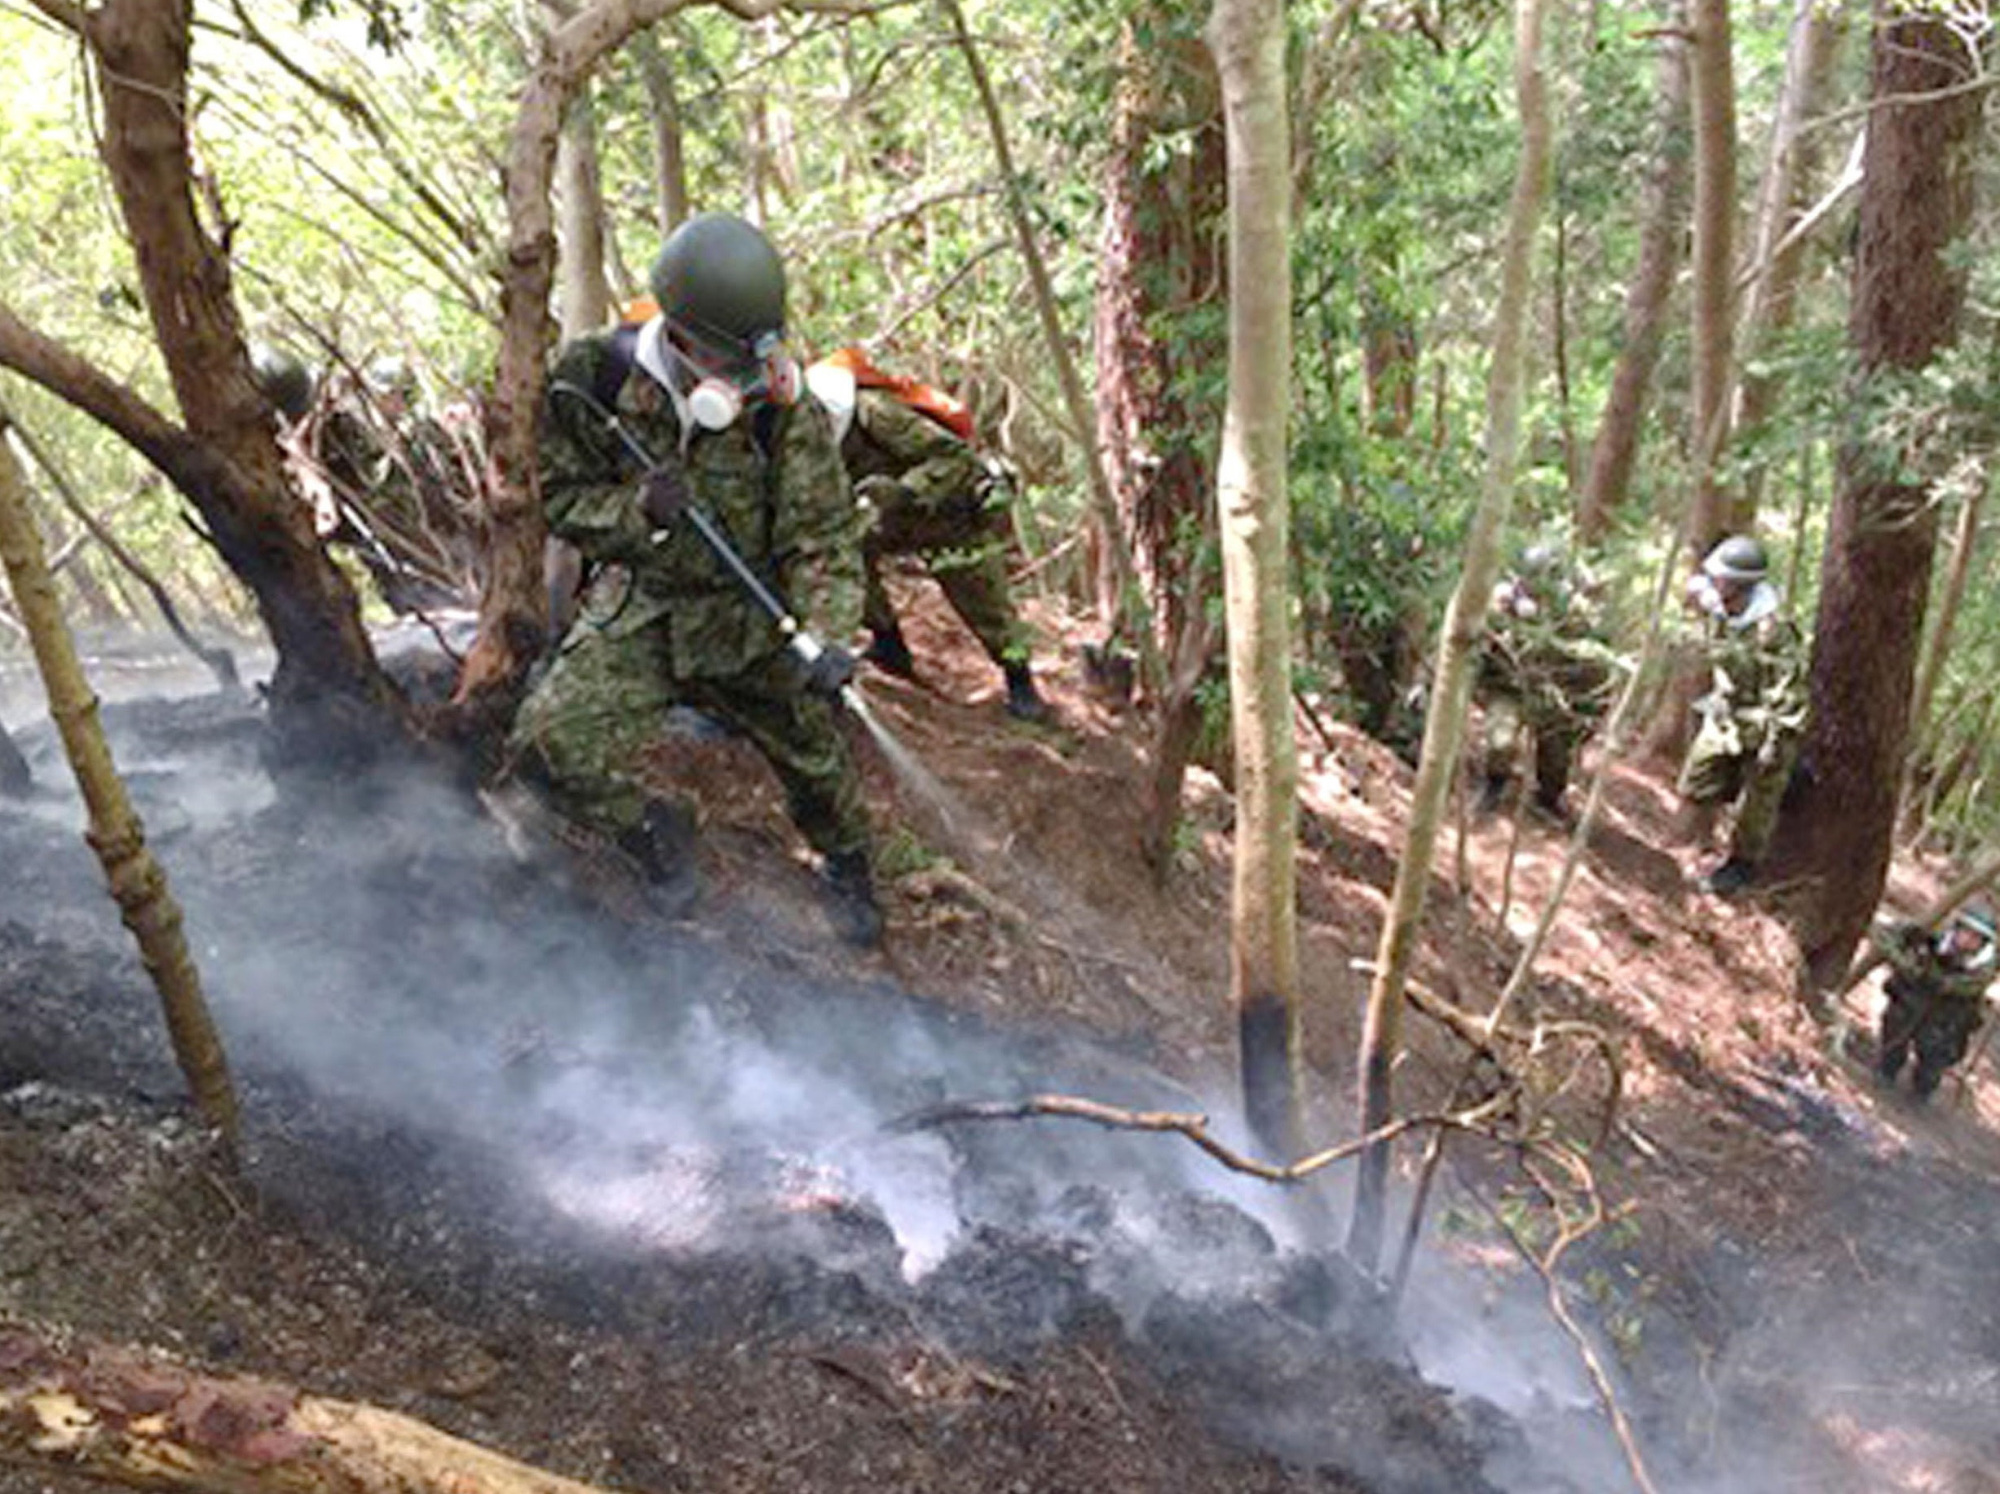 Ground Self-Defense Force personnel work on putting out fire in a forest in Namie, Fukushima Prefecture on May 4. | GSDF/VIA KYODO